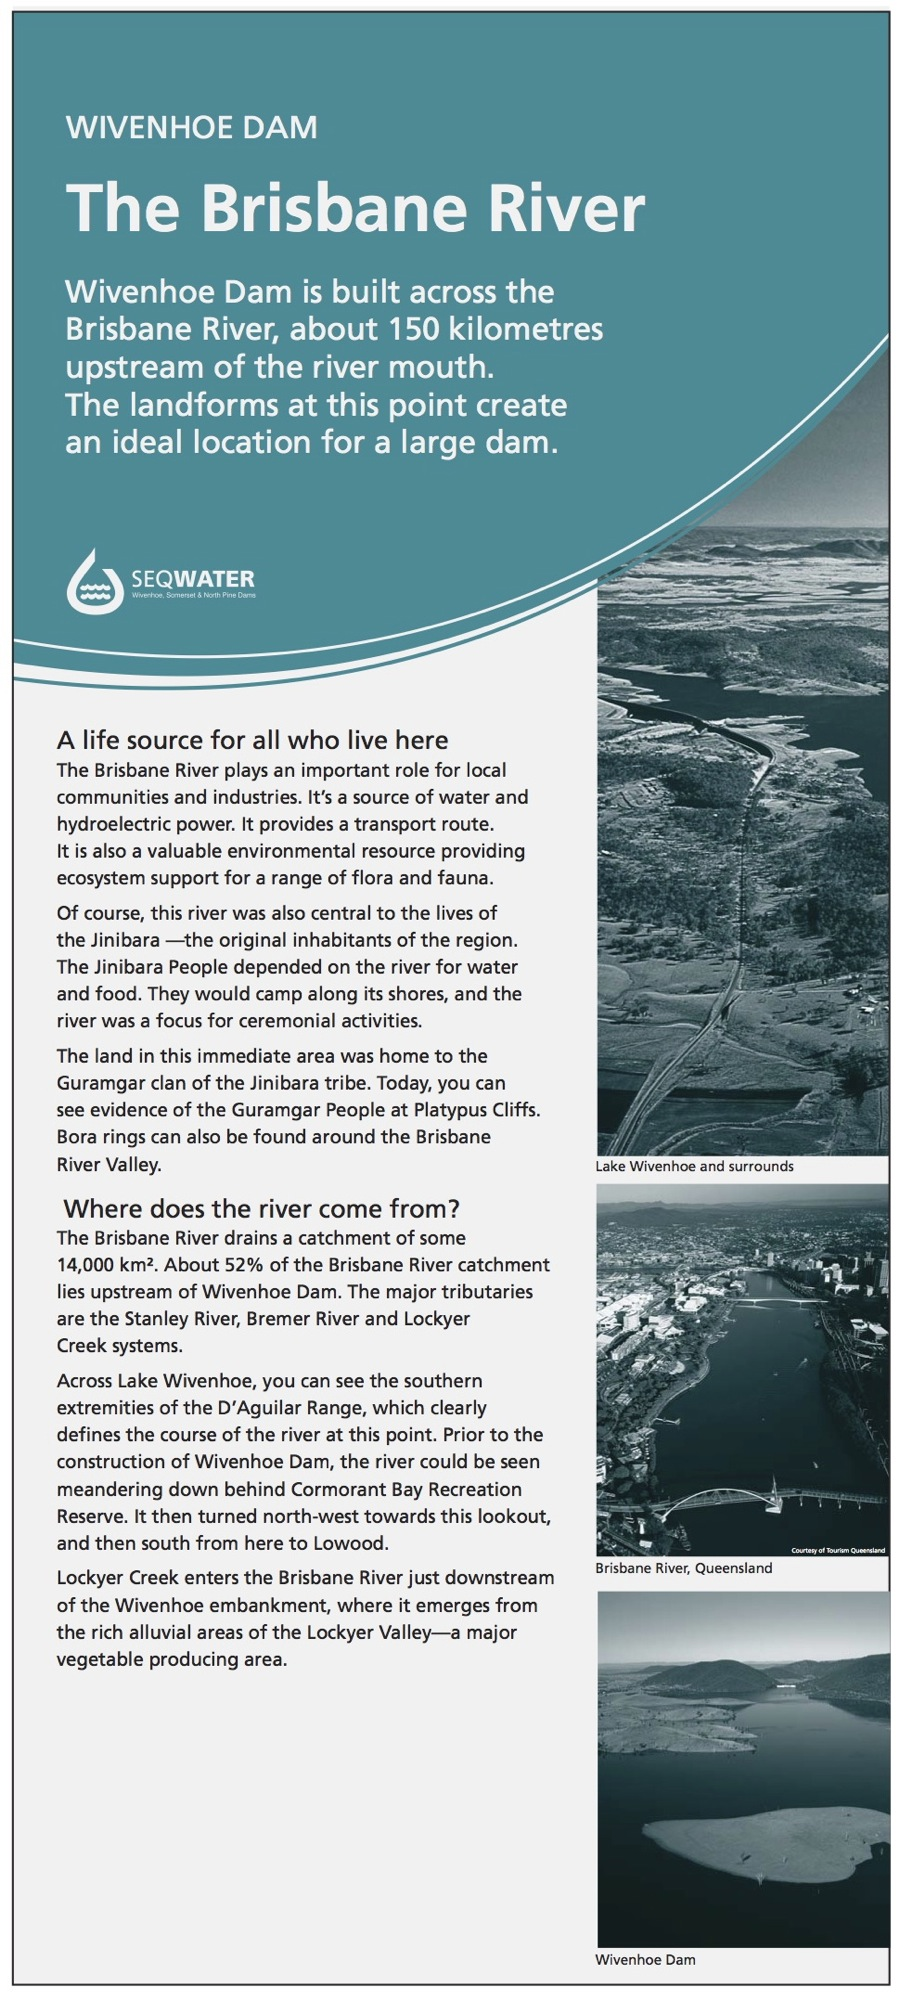 Wivenhoe Dam interpretive signage - Brisbane River